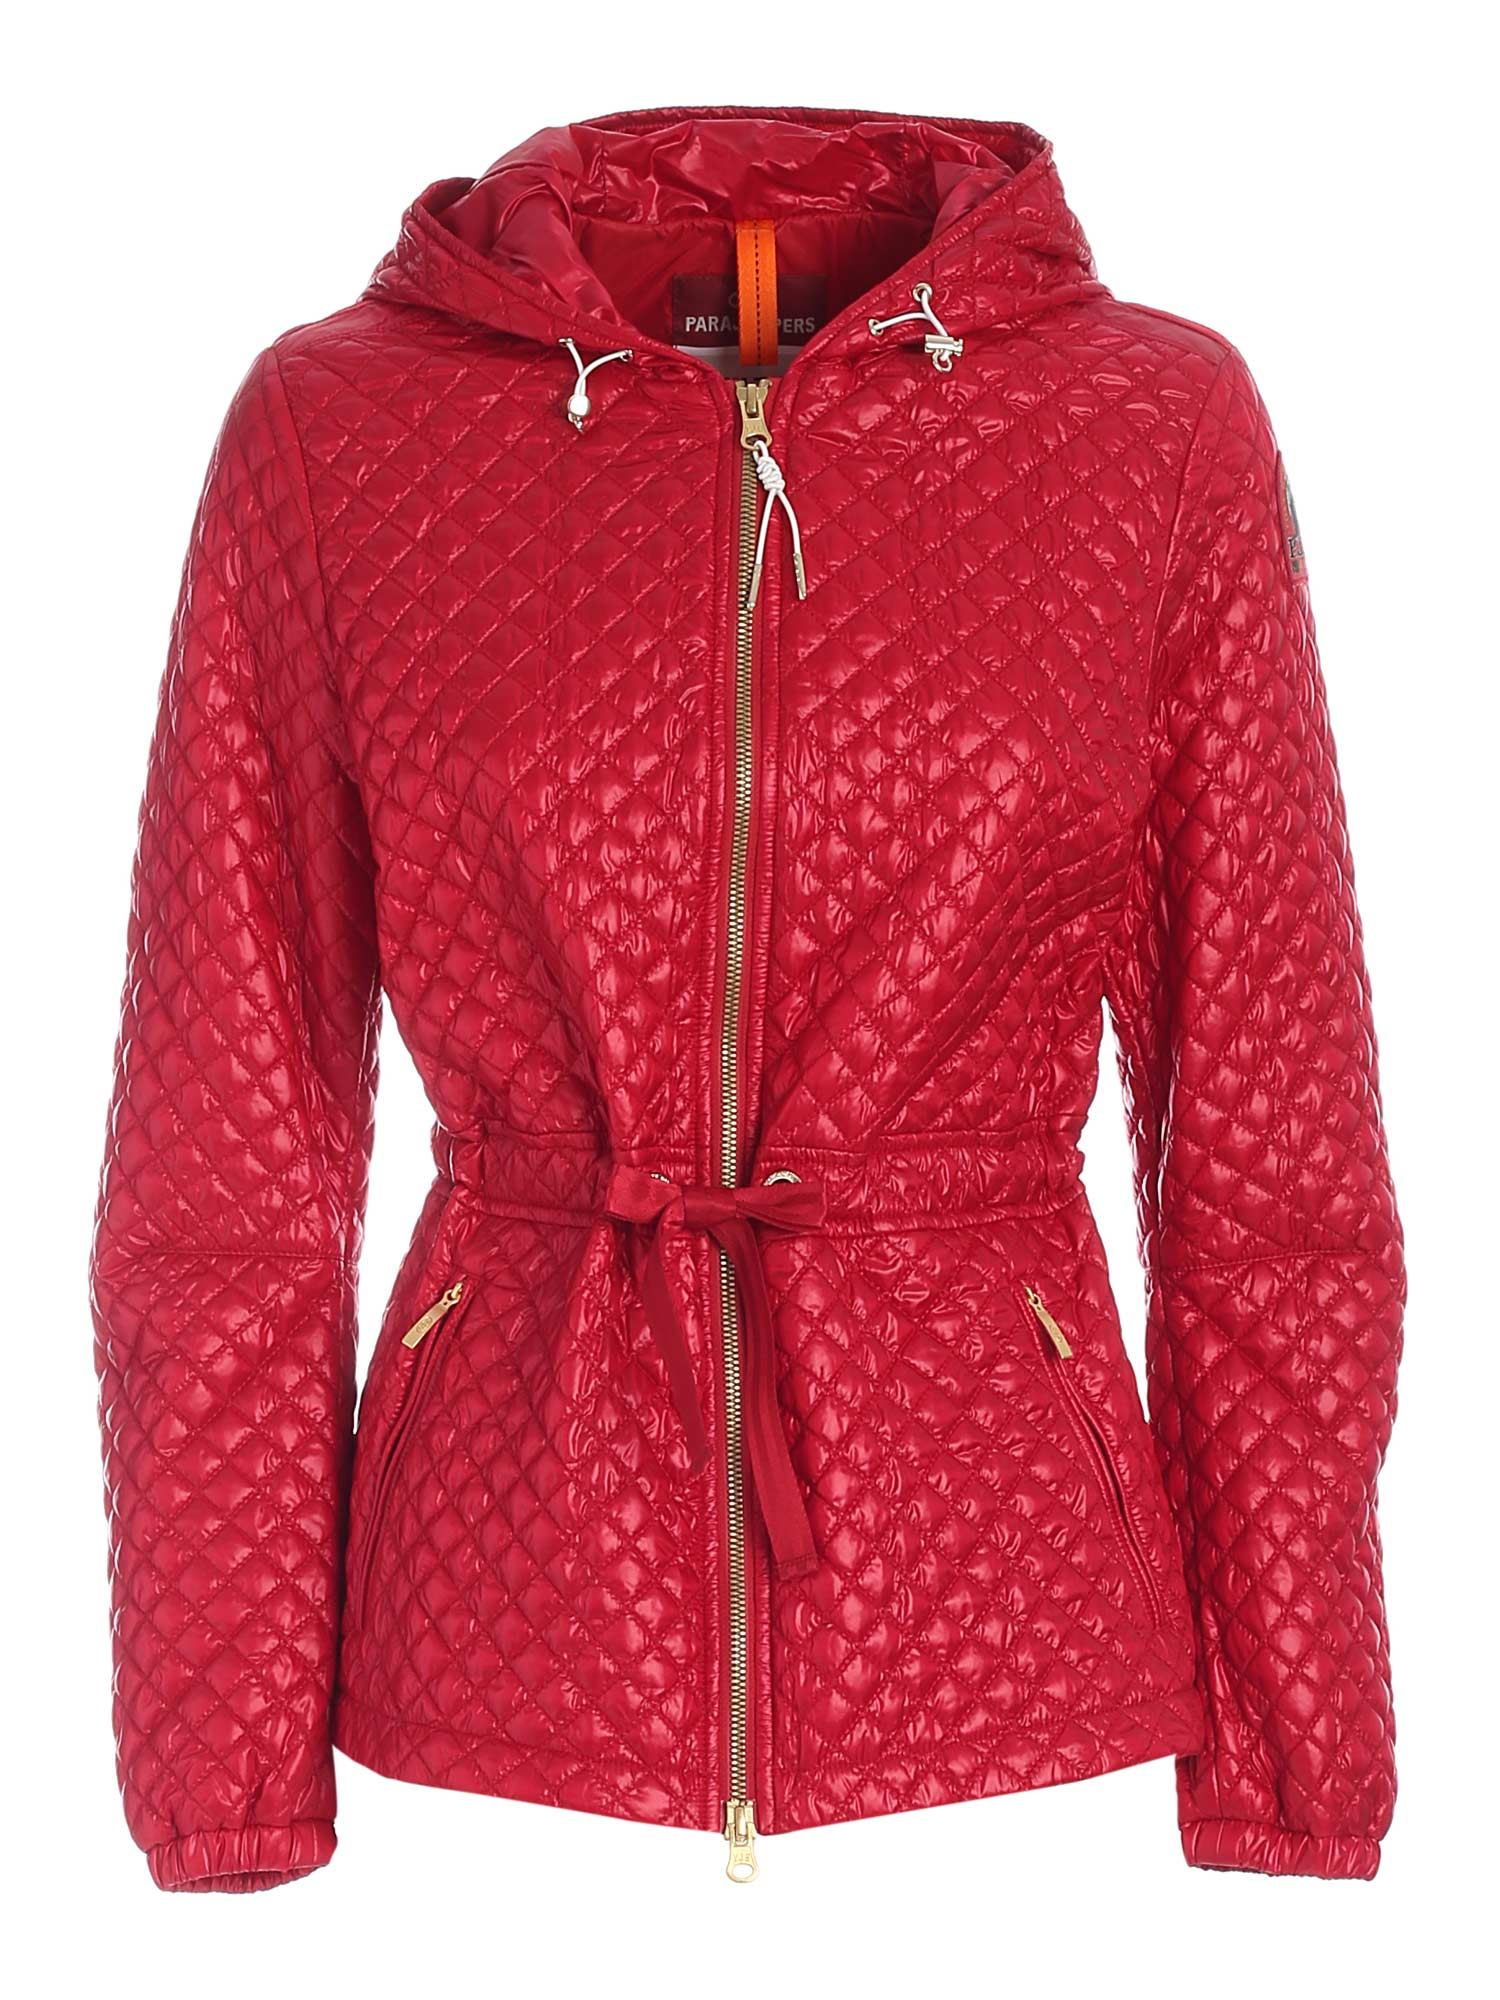 Parajumpers LILLY PUFFER JACKET IN RED